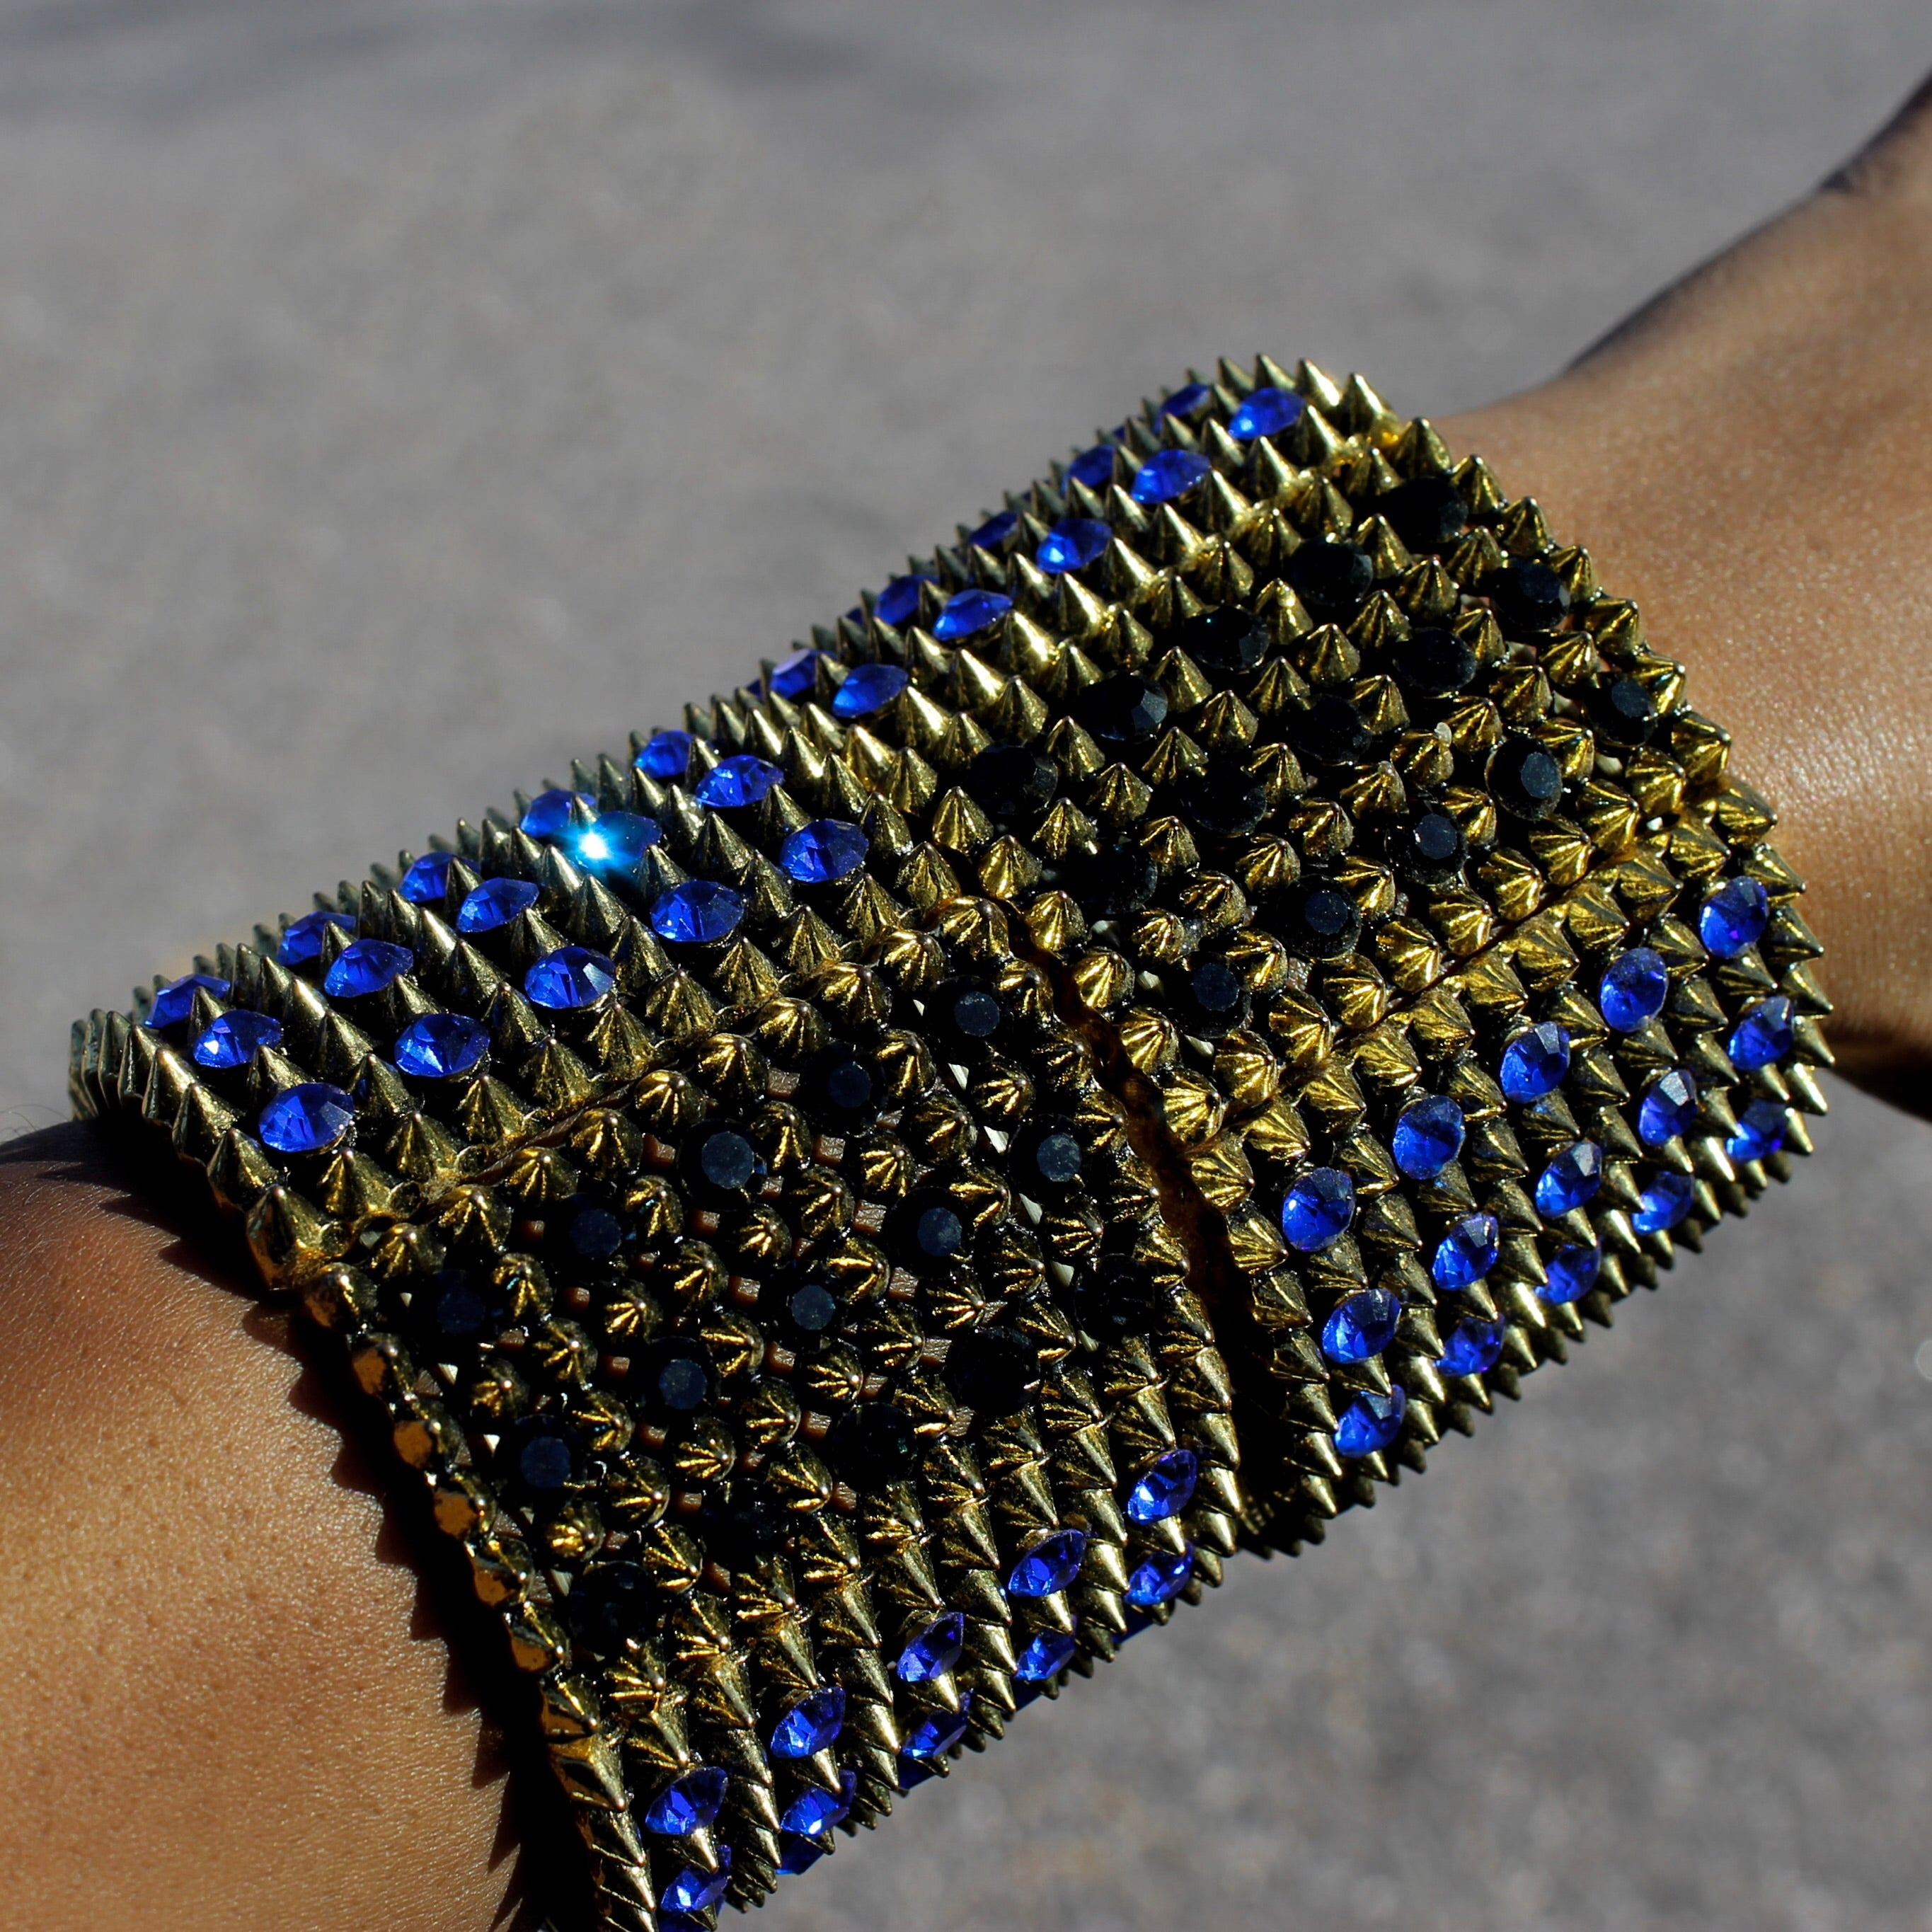 A High Polished Gold Expandable Bracelet featuring Blue and Black Stone Design.